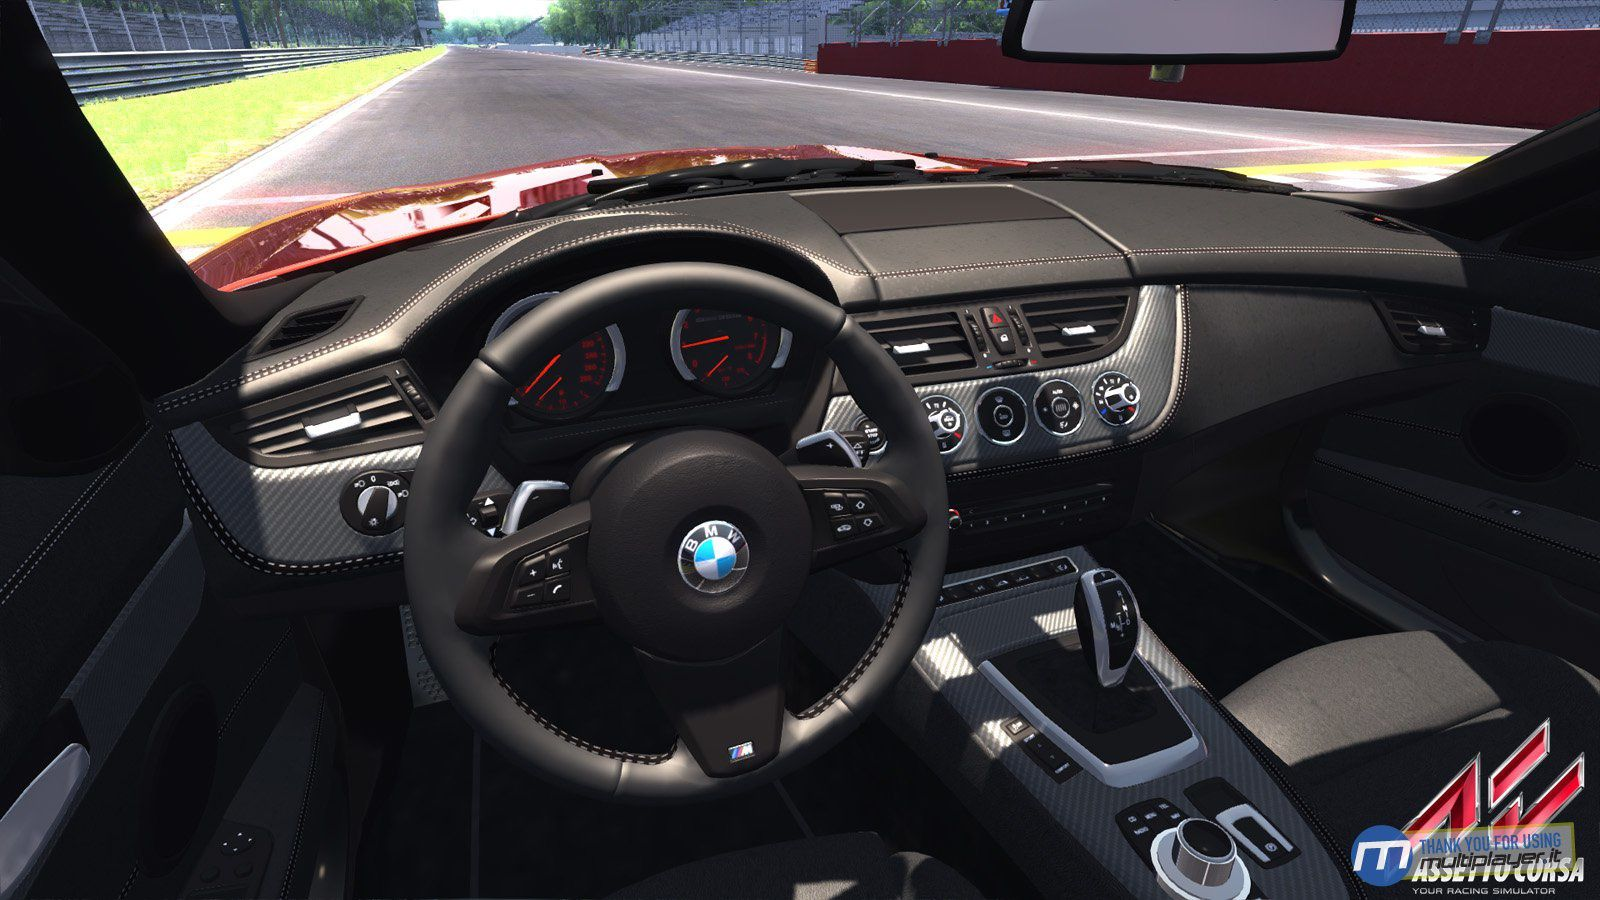 http://a133.idata.over-blog.com/2/73/25/53/news4/ac_bmw_wheel.jpg